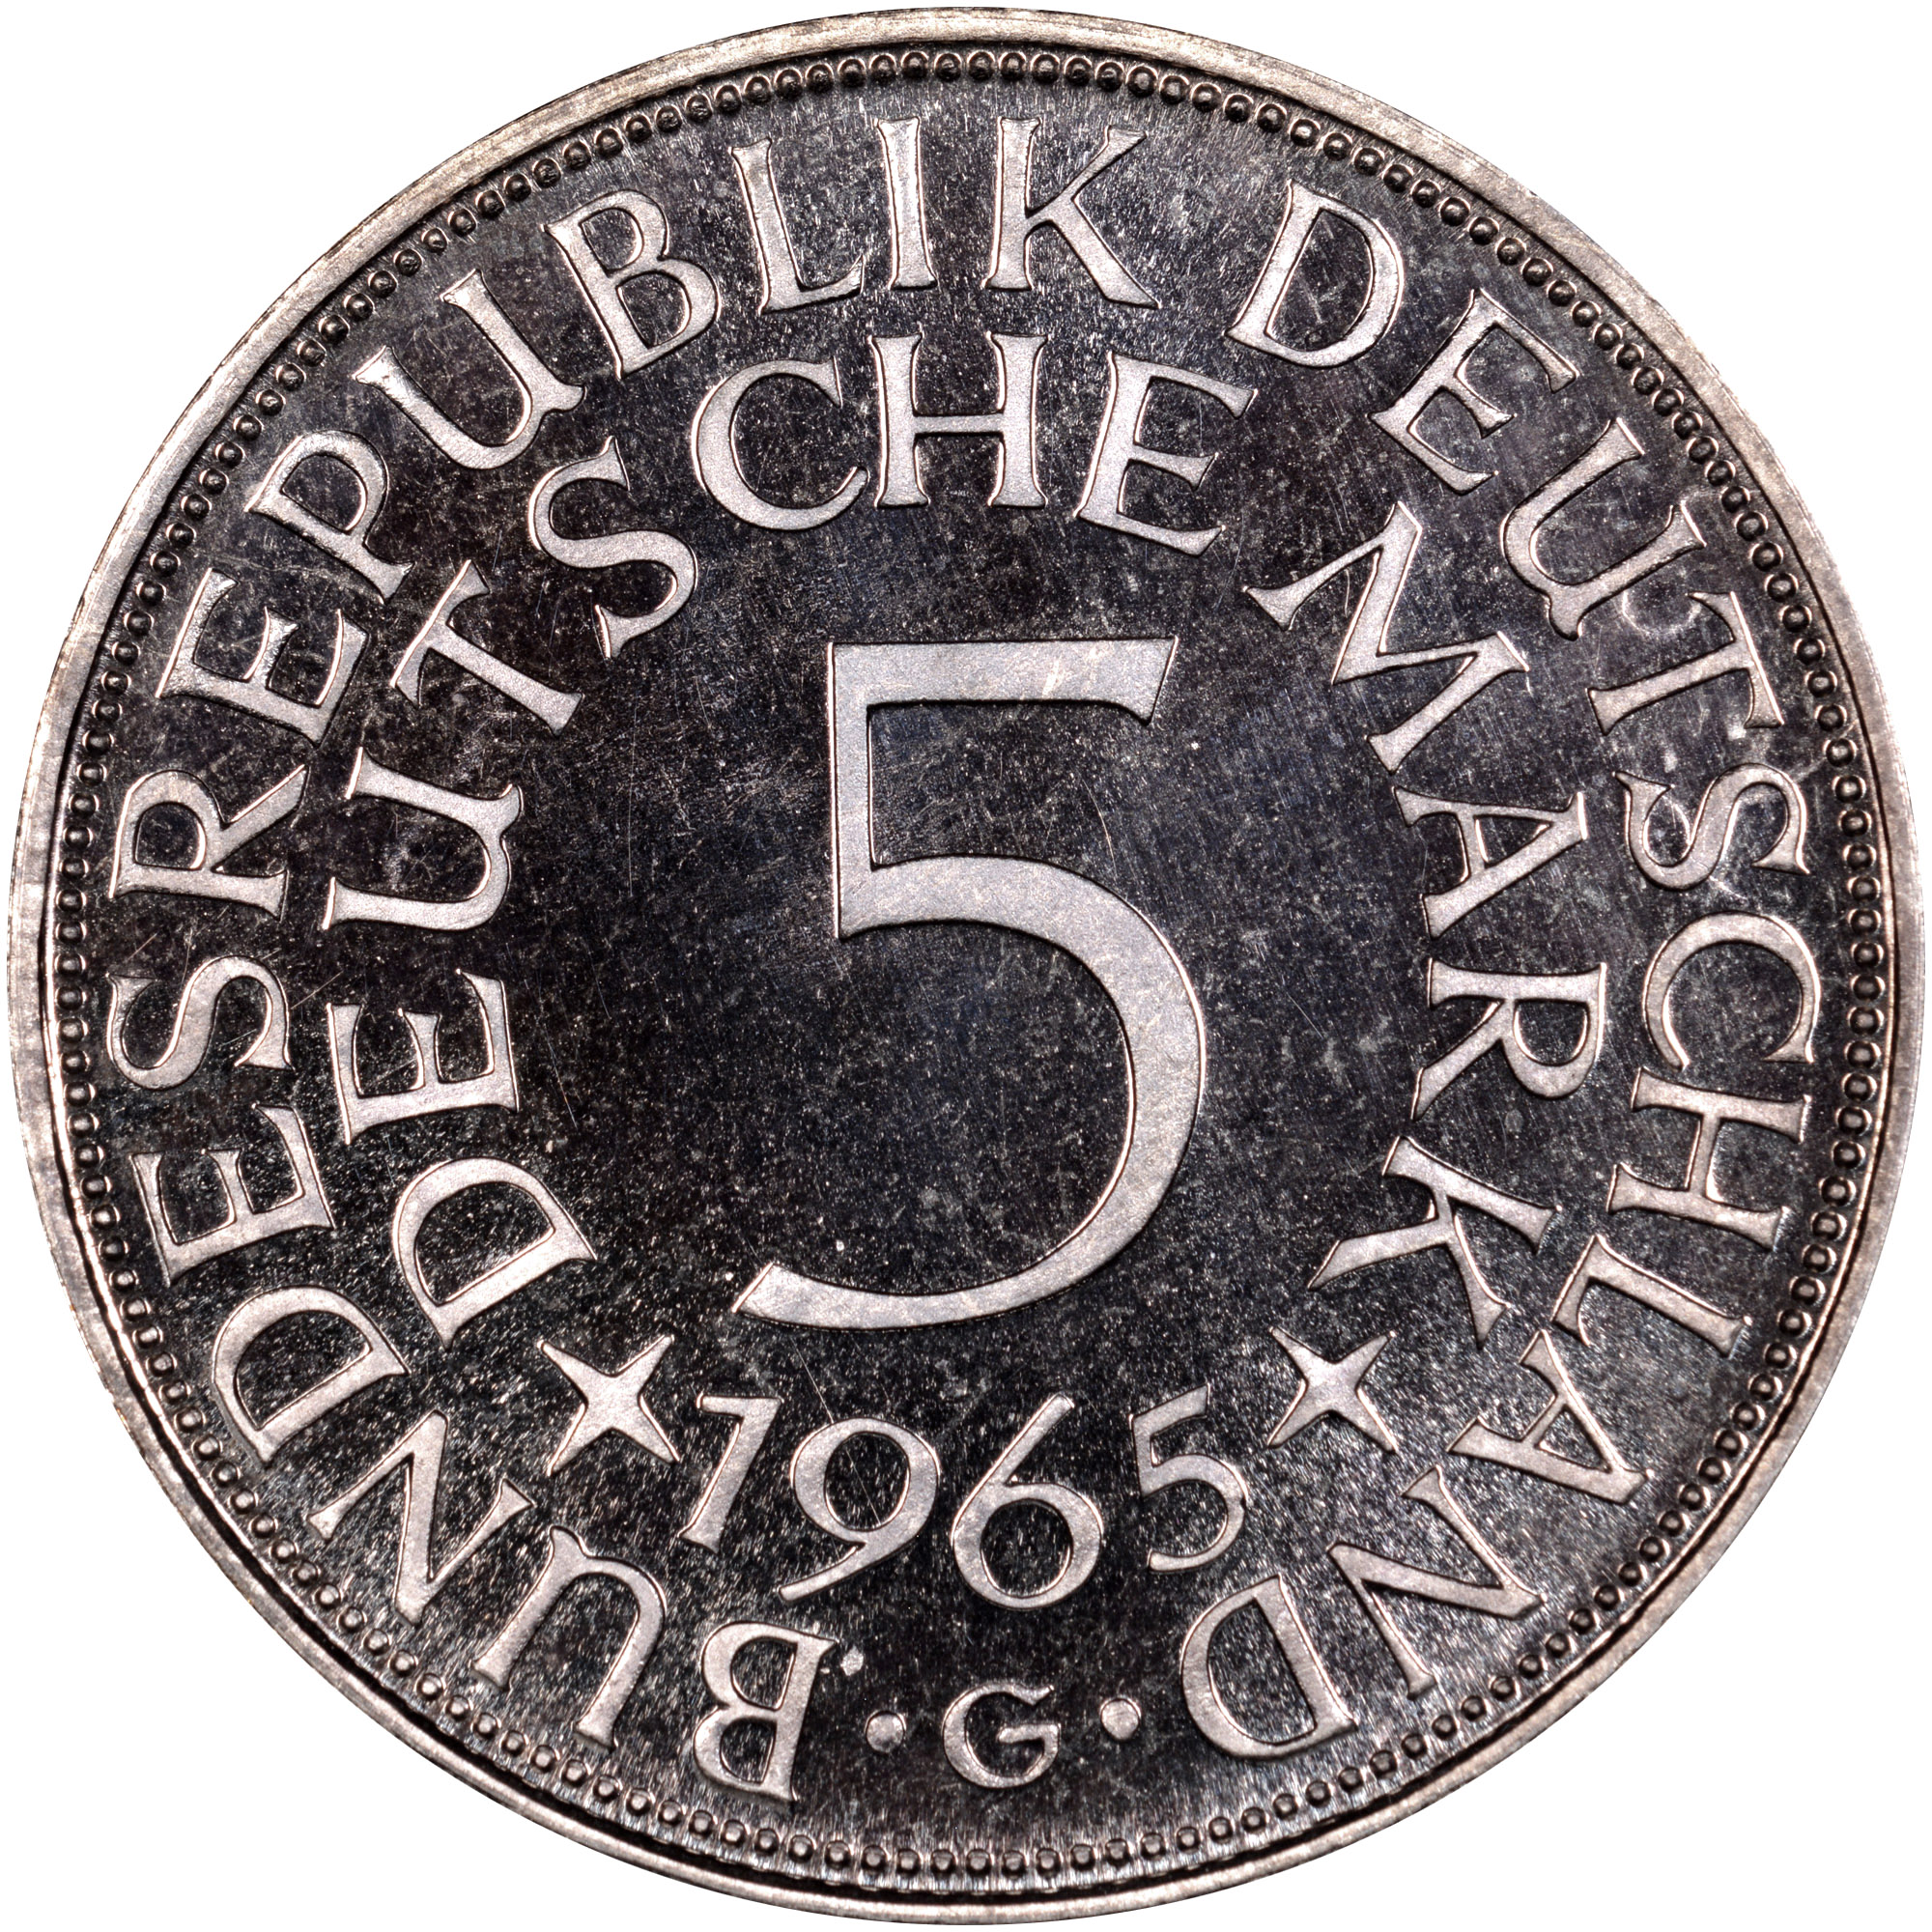 Germany - Federal Republic 5 Mark obverse